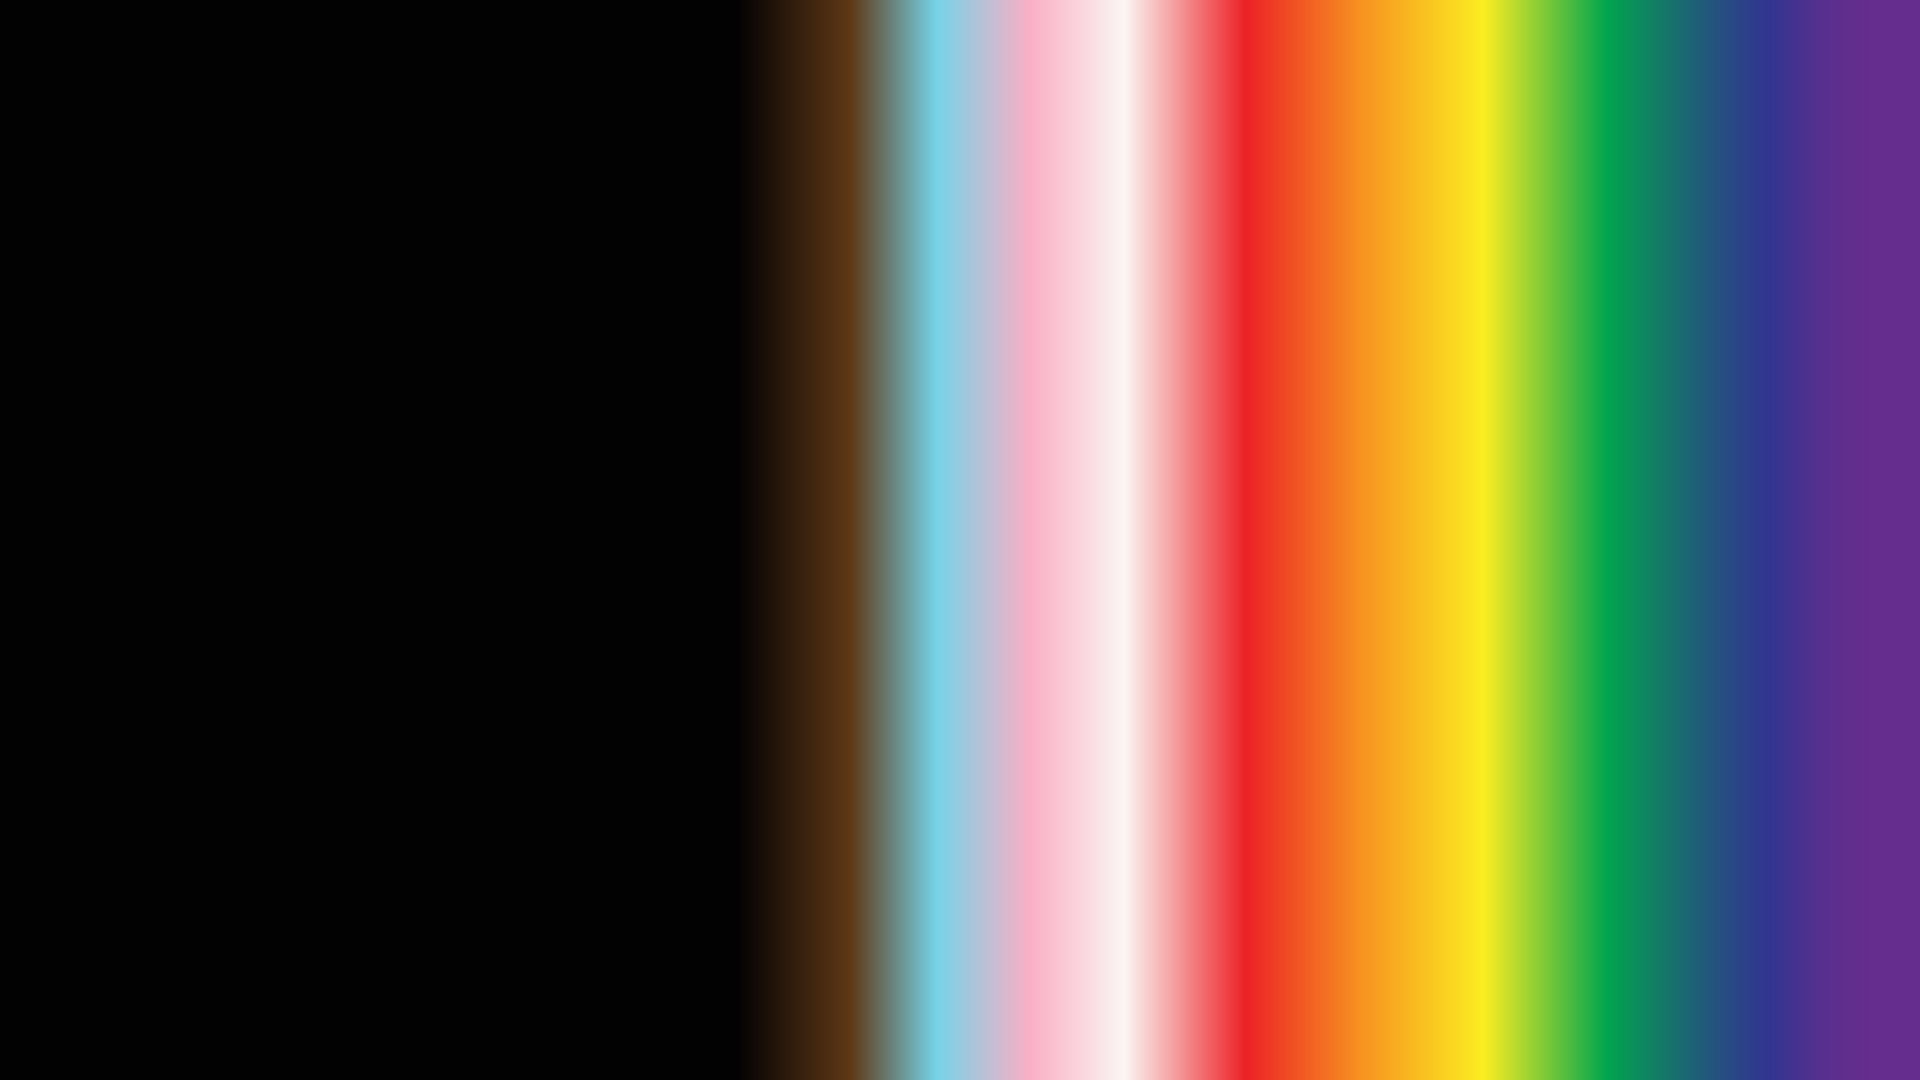 Pride flag colors in a gradient